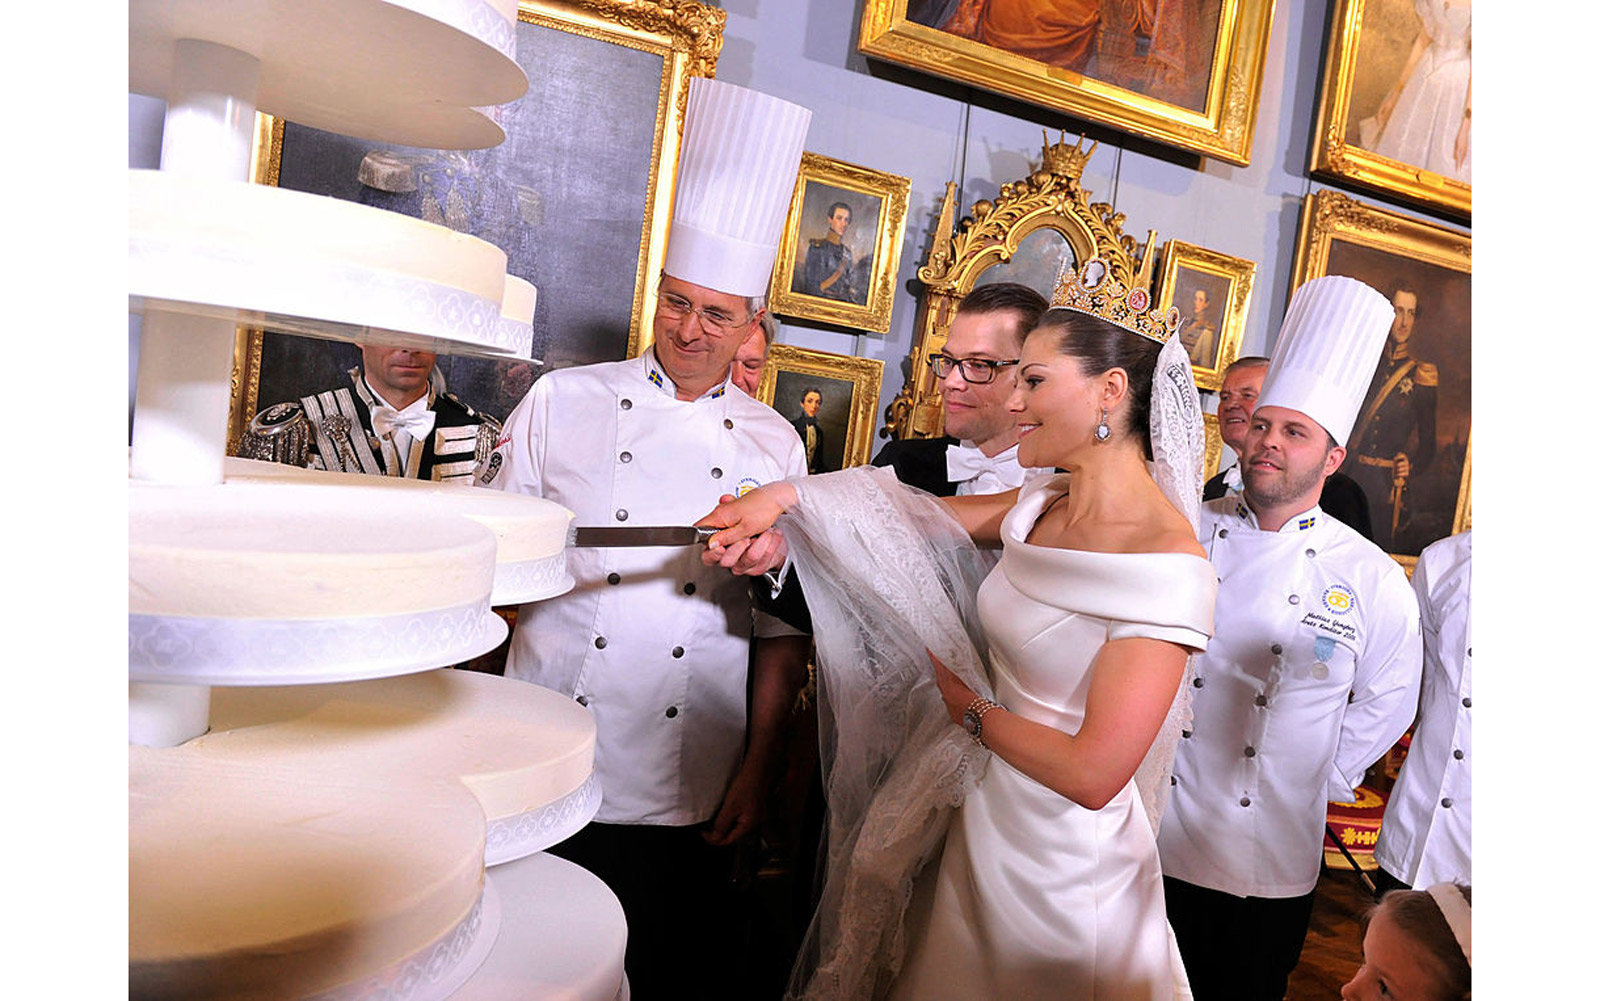 Crown Princess Victoria of Sweden and Prince Daniel, Duke of Vastergotland cut their wedding cake during the Wedding Banquet at the Royal Palace